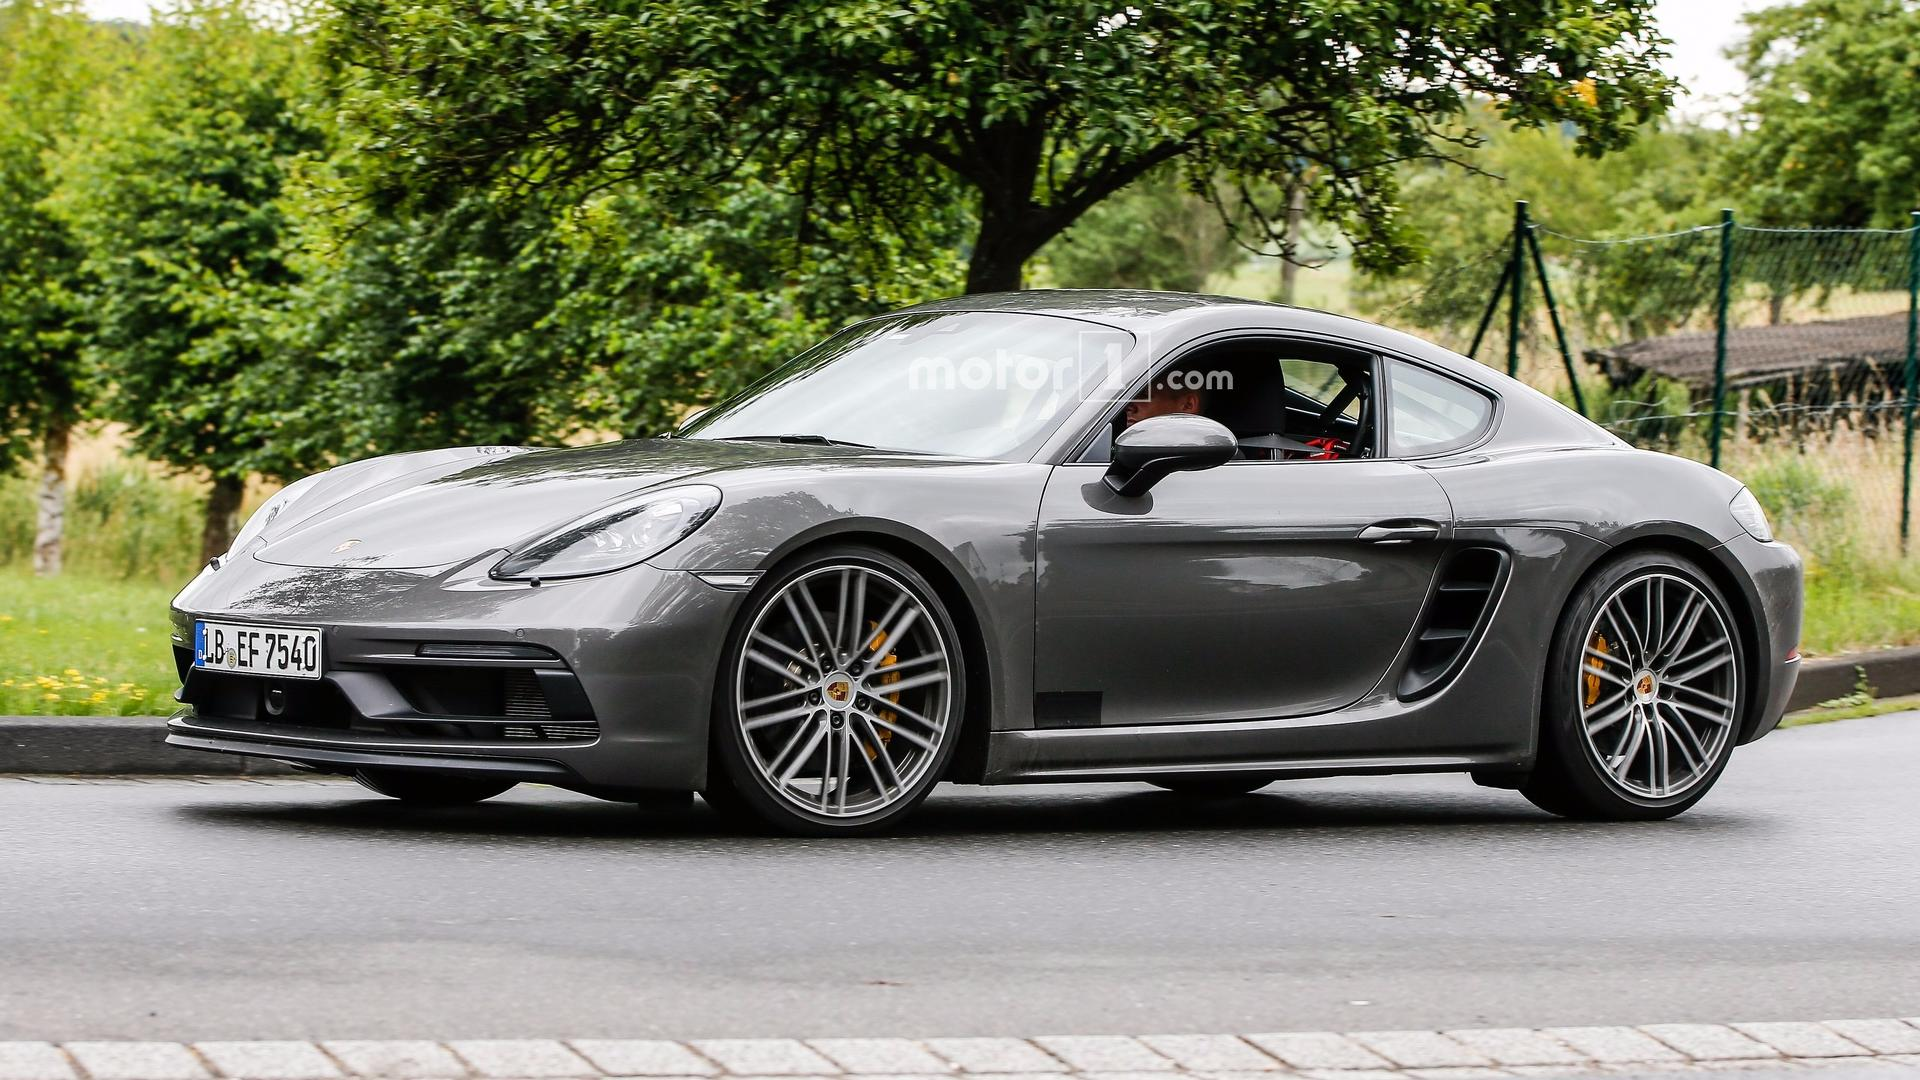 2018 porsche cayman gts spied virtually undisguised. Black Bedroom Furniture Sets. Home Design Ideas